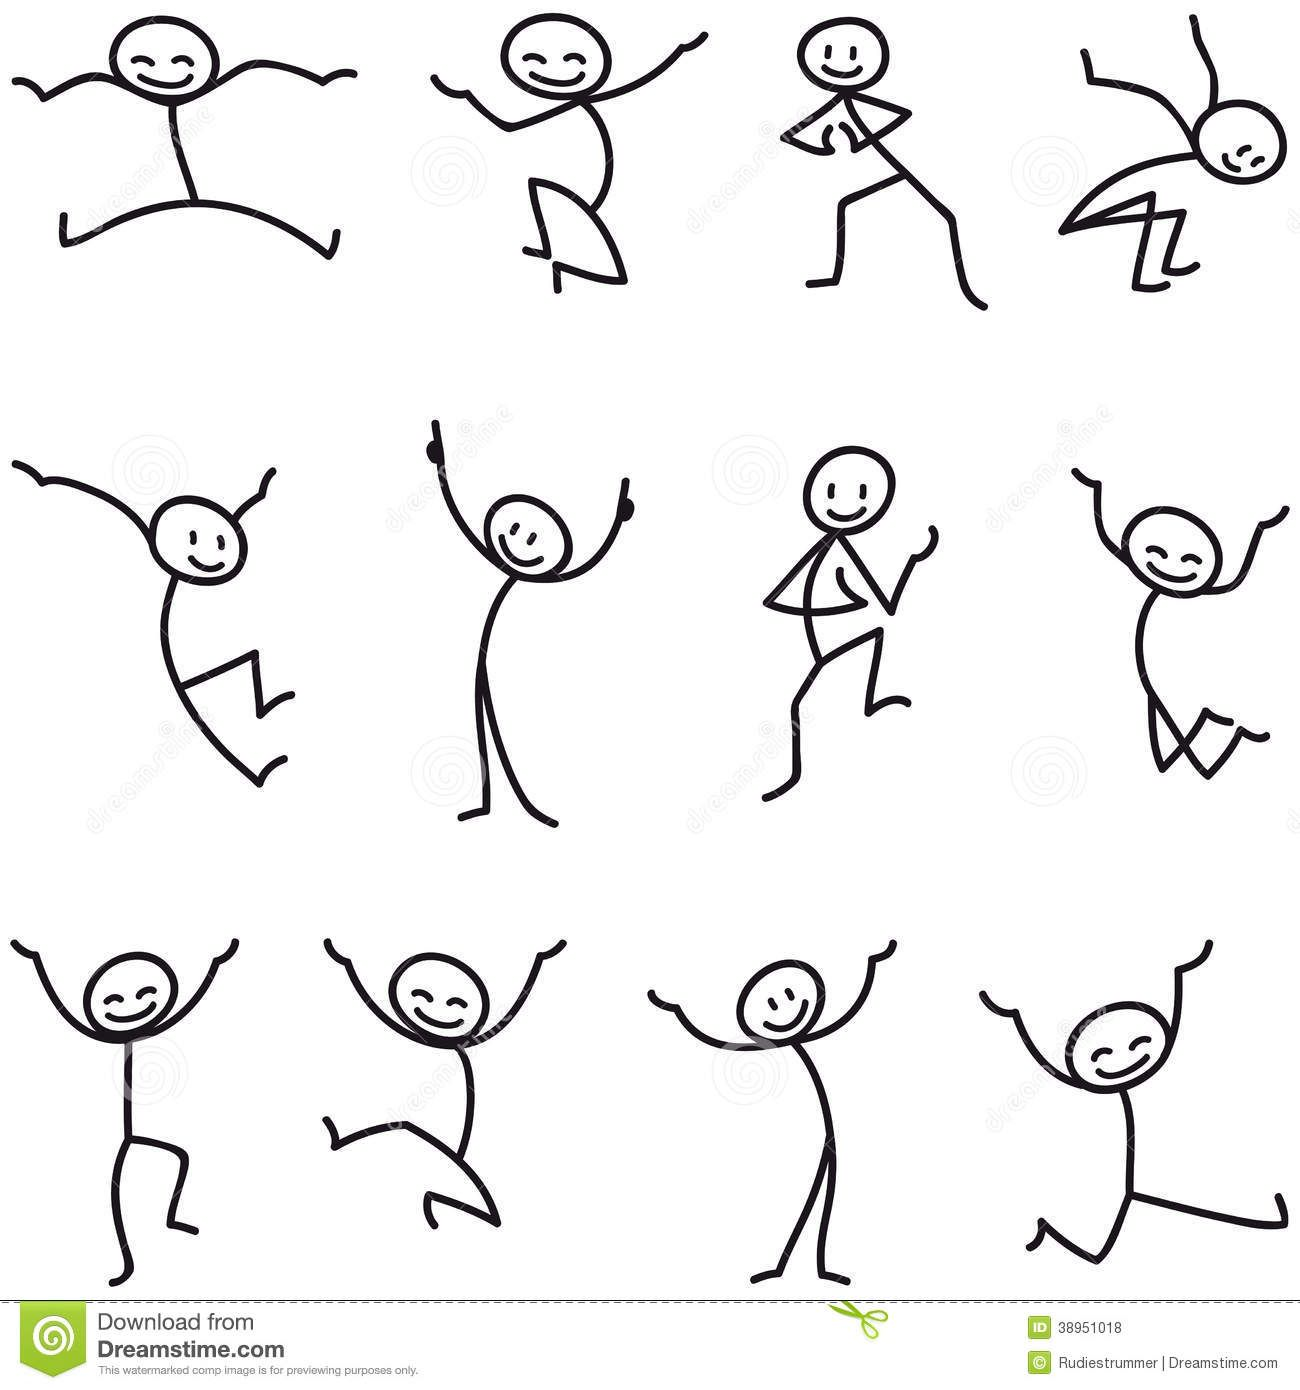 Figure clipart excitement. Stick man happy jumping